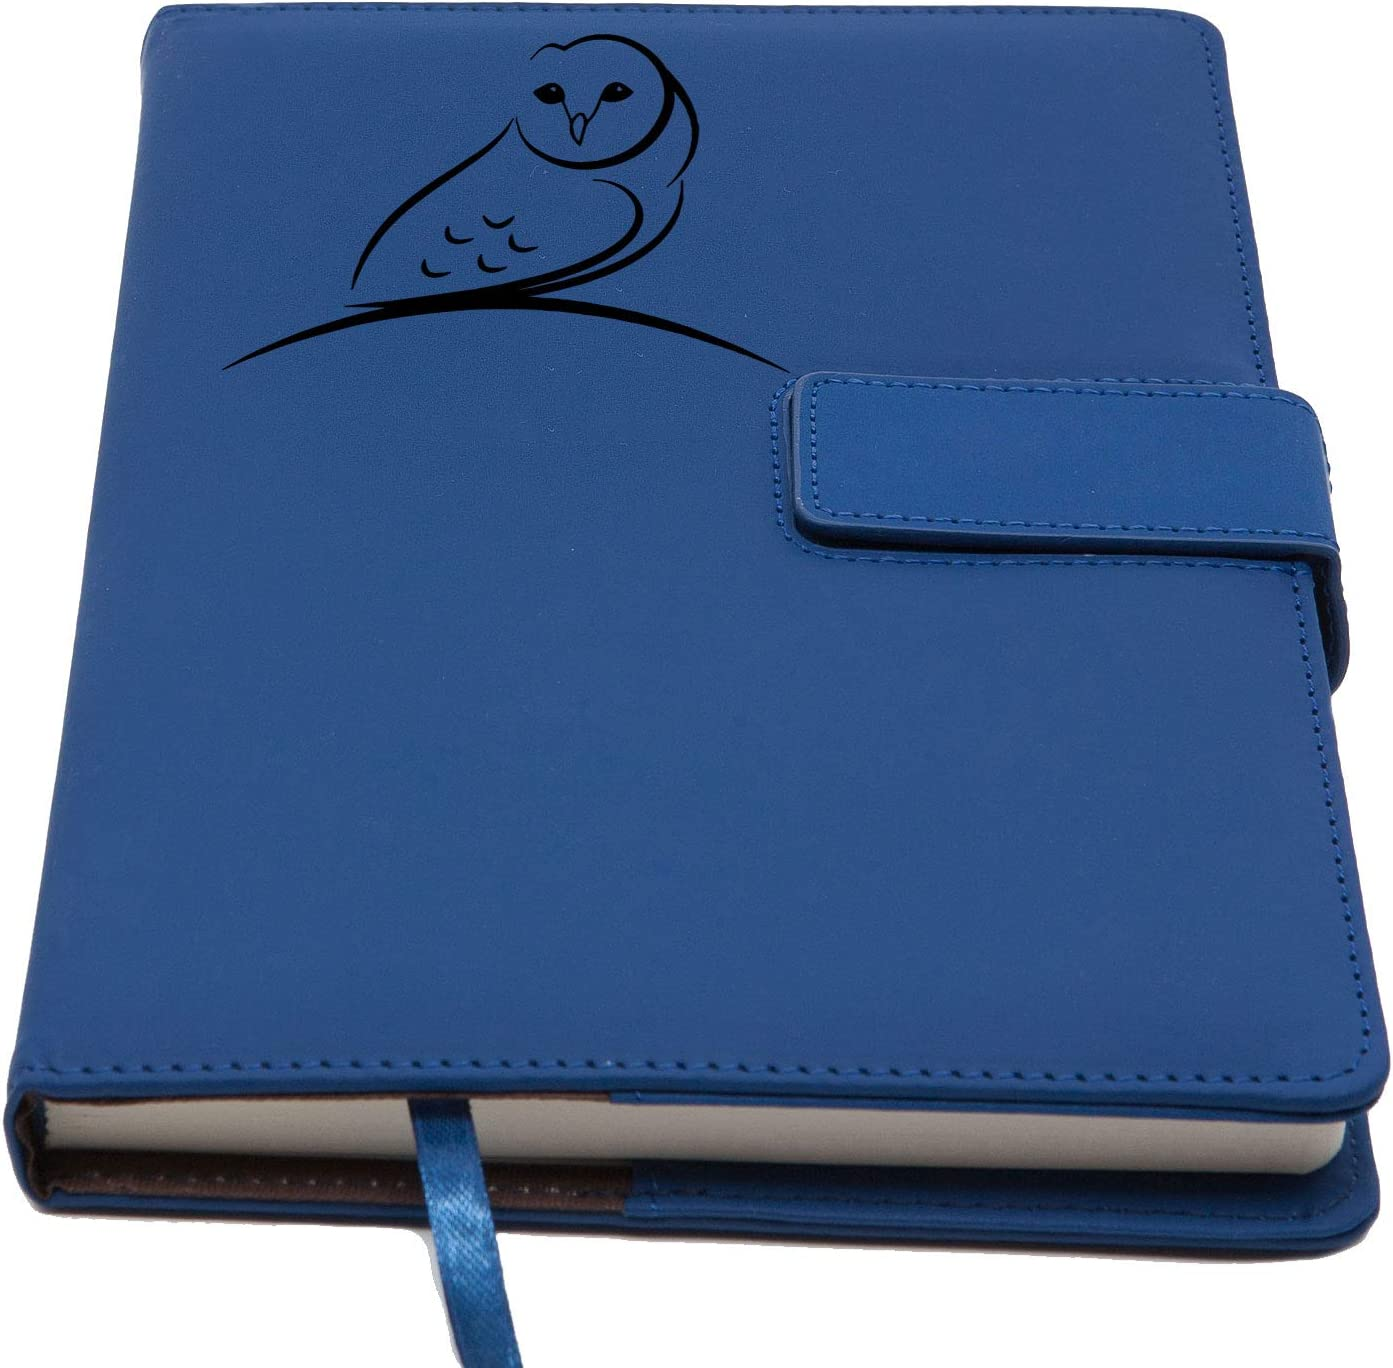 The Nature Owl Refillable Writing Journal | Magnetic Faux Leather Journal, 5 x 8 Inch, 200 Lined Pages Travel Personal Diary, Quality Notebooks and Journals for Men and Women from The Amazing Office